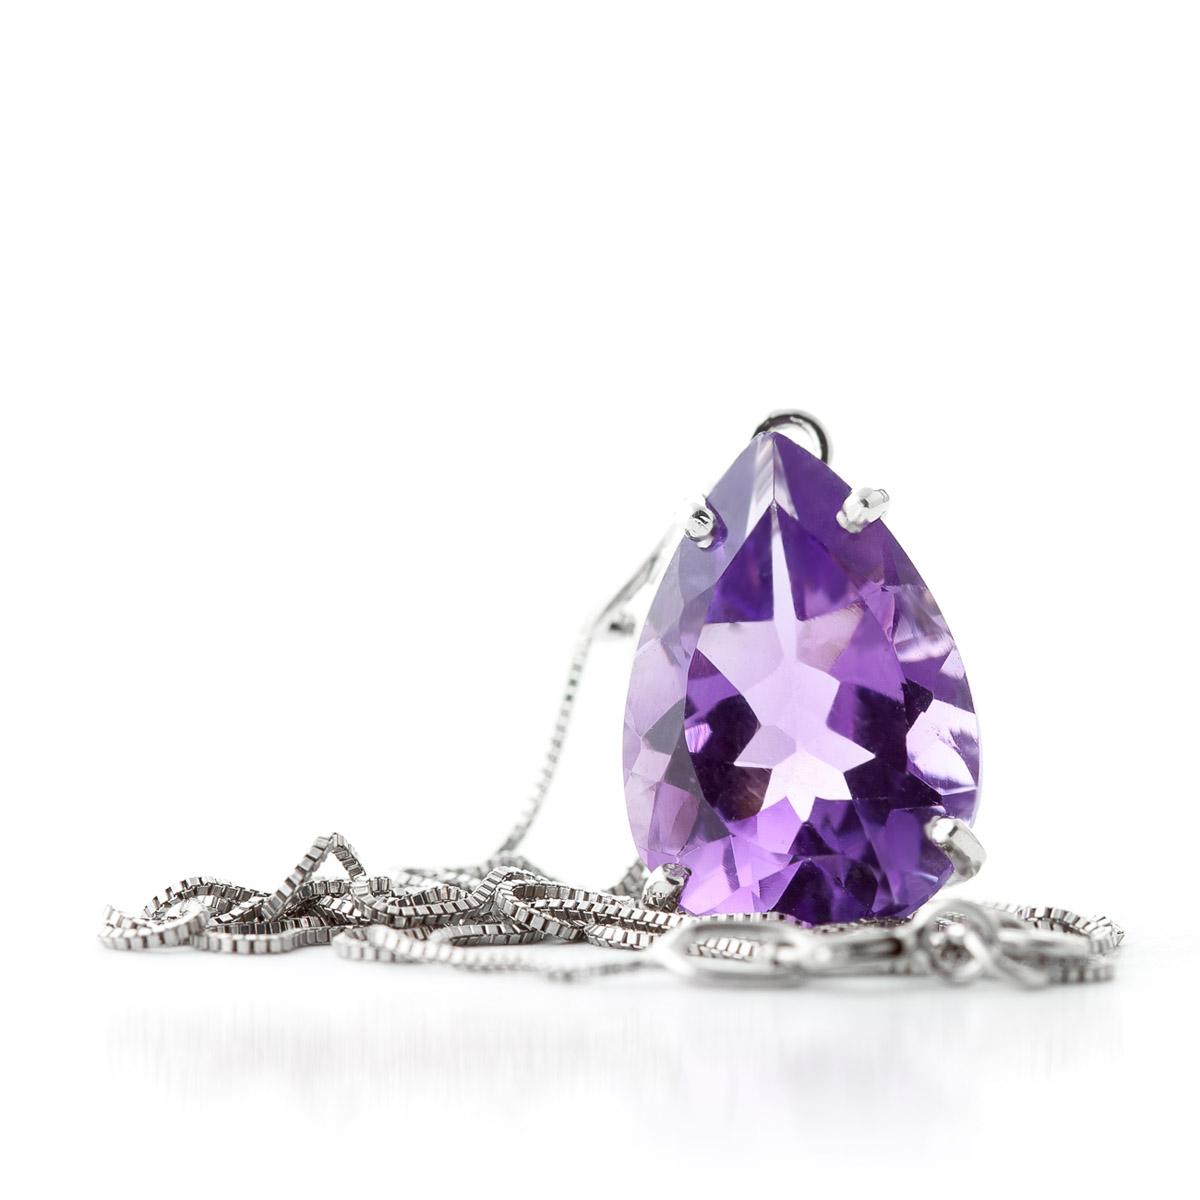 Pear Cut Amethyst Pendant Necklace 5.0ct in 9ct White Gold